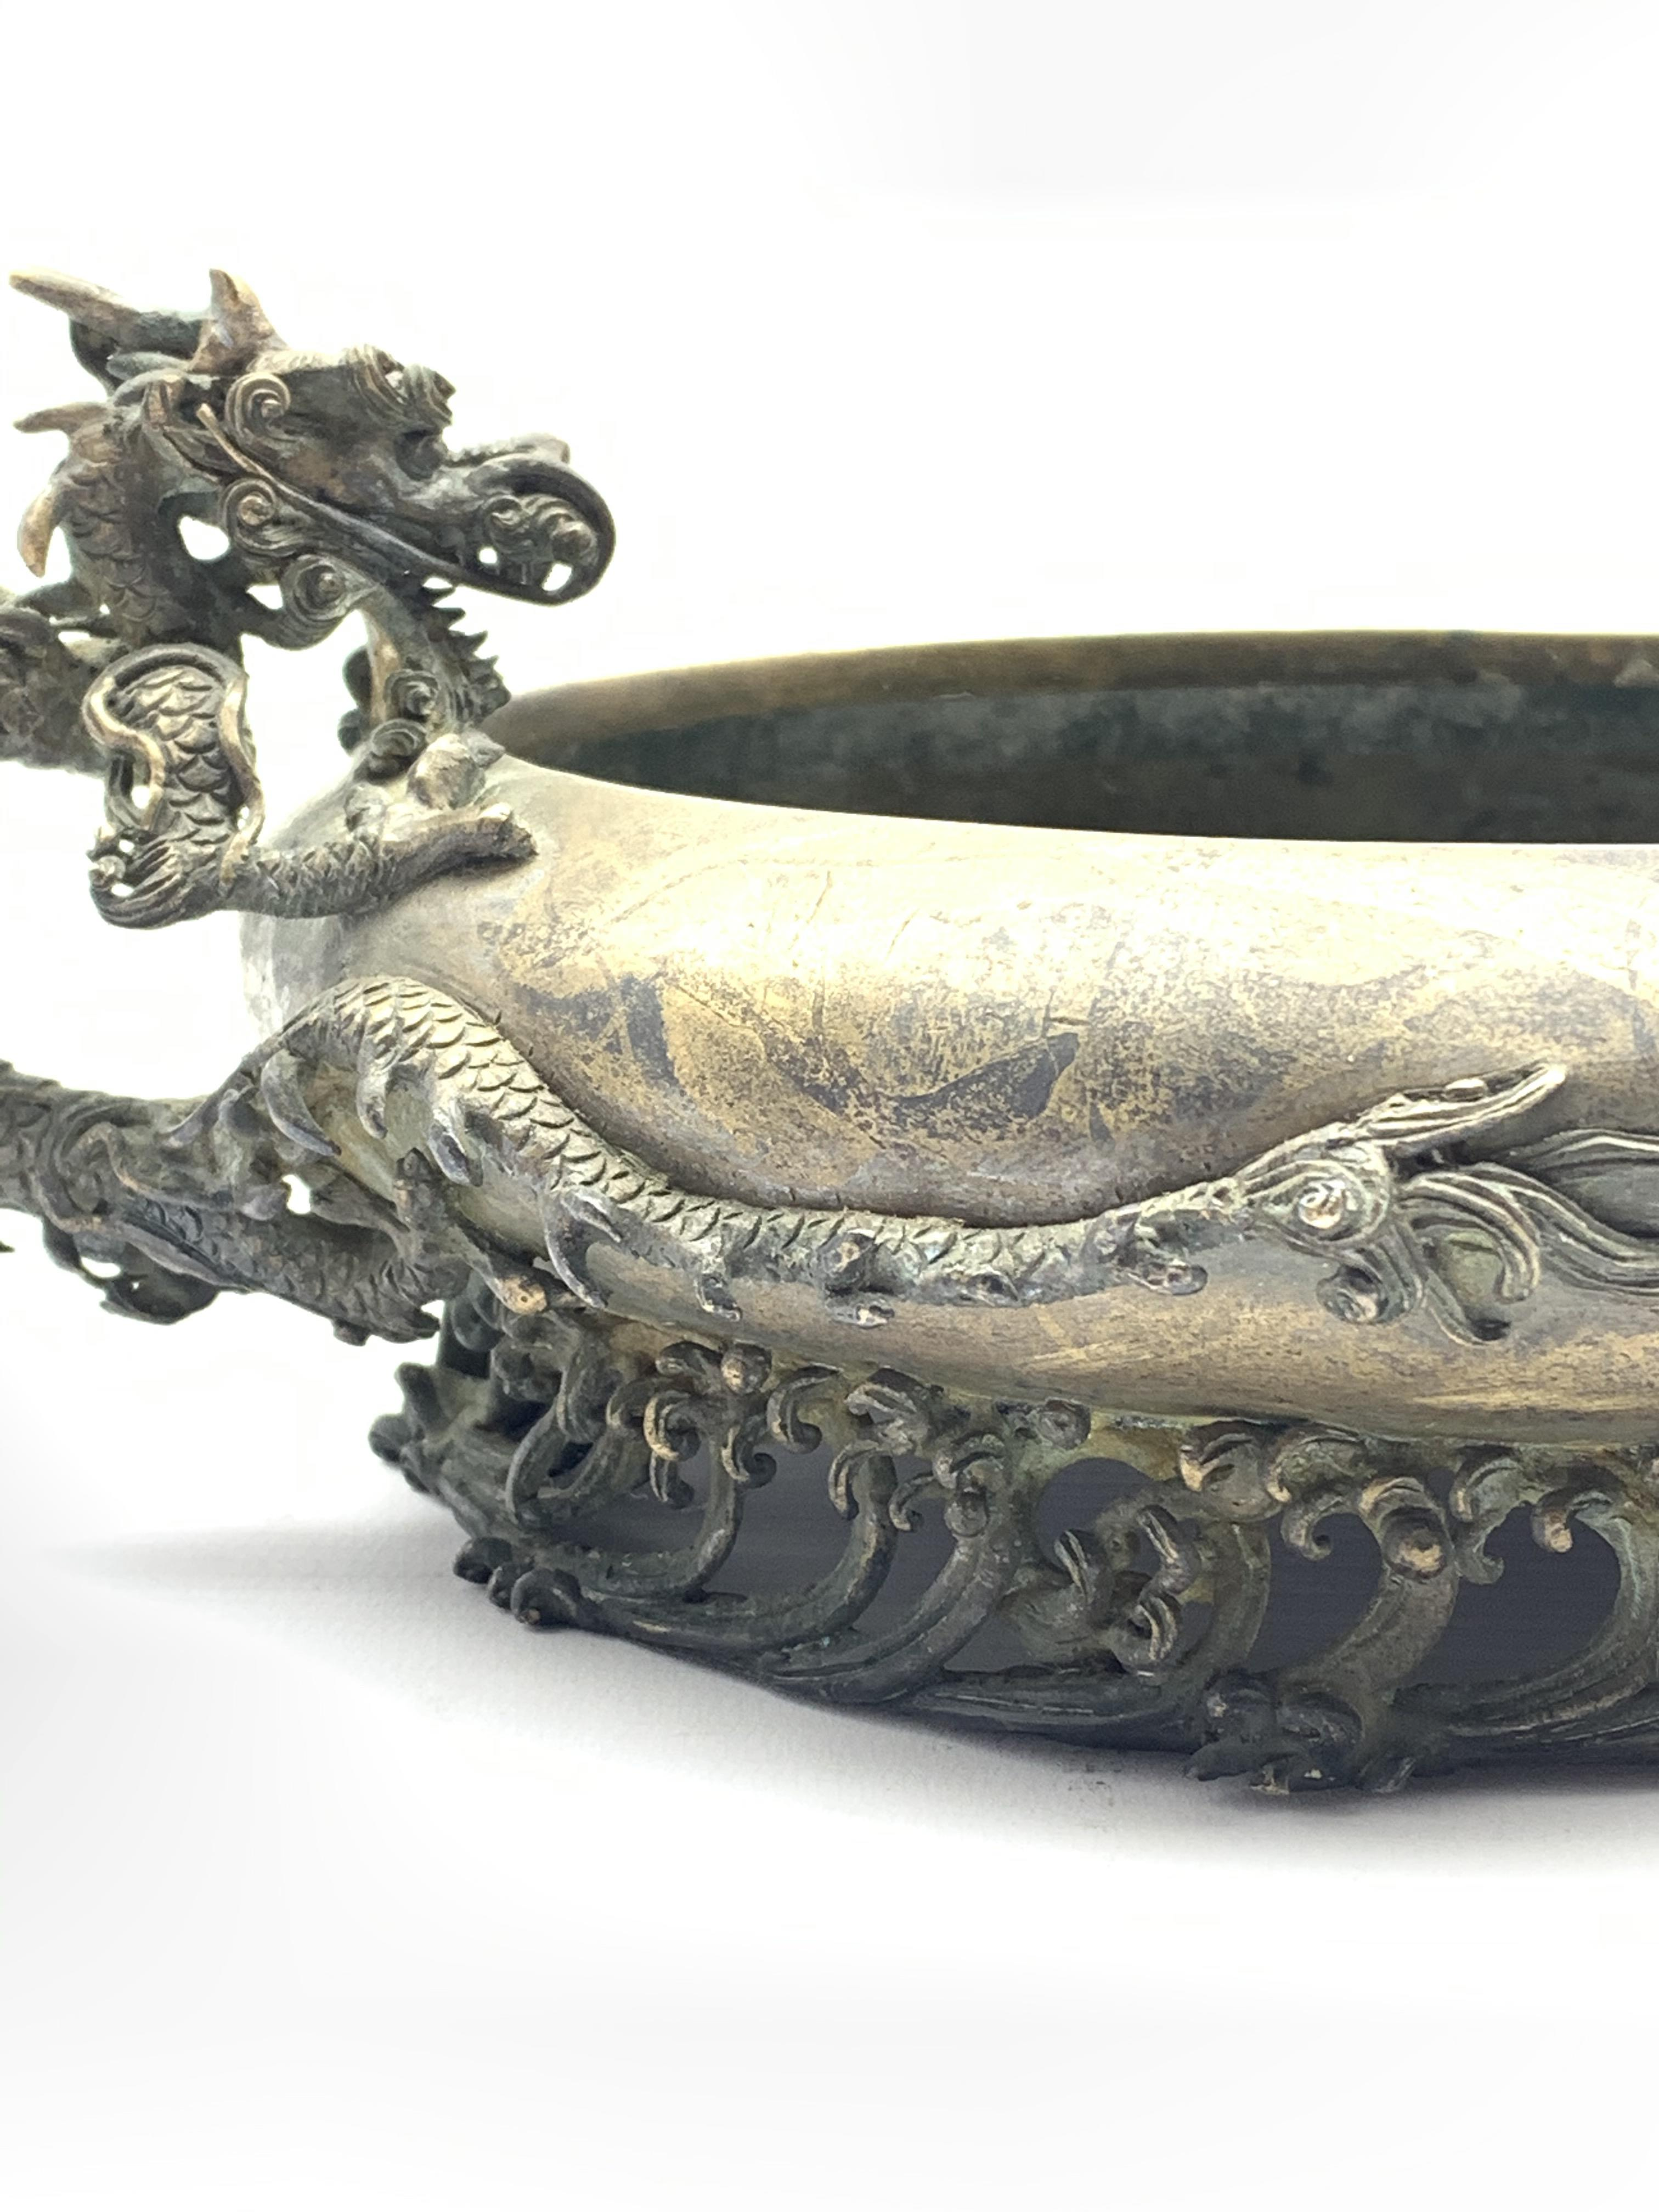 19th century Japanese bronze censer, compressed body with inverted rim flanked by a pair of bronze - Image 4 of 5